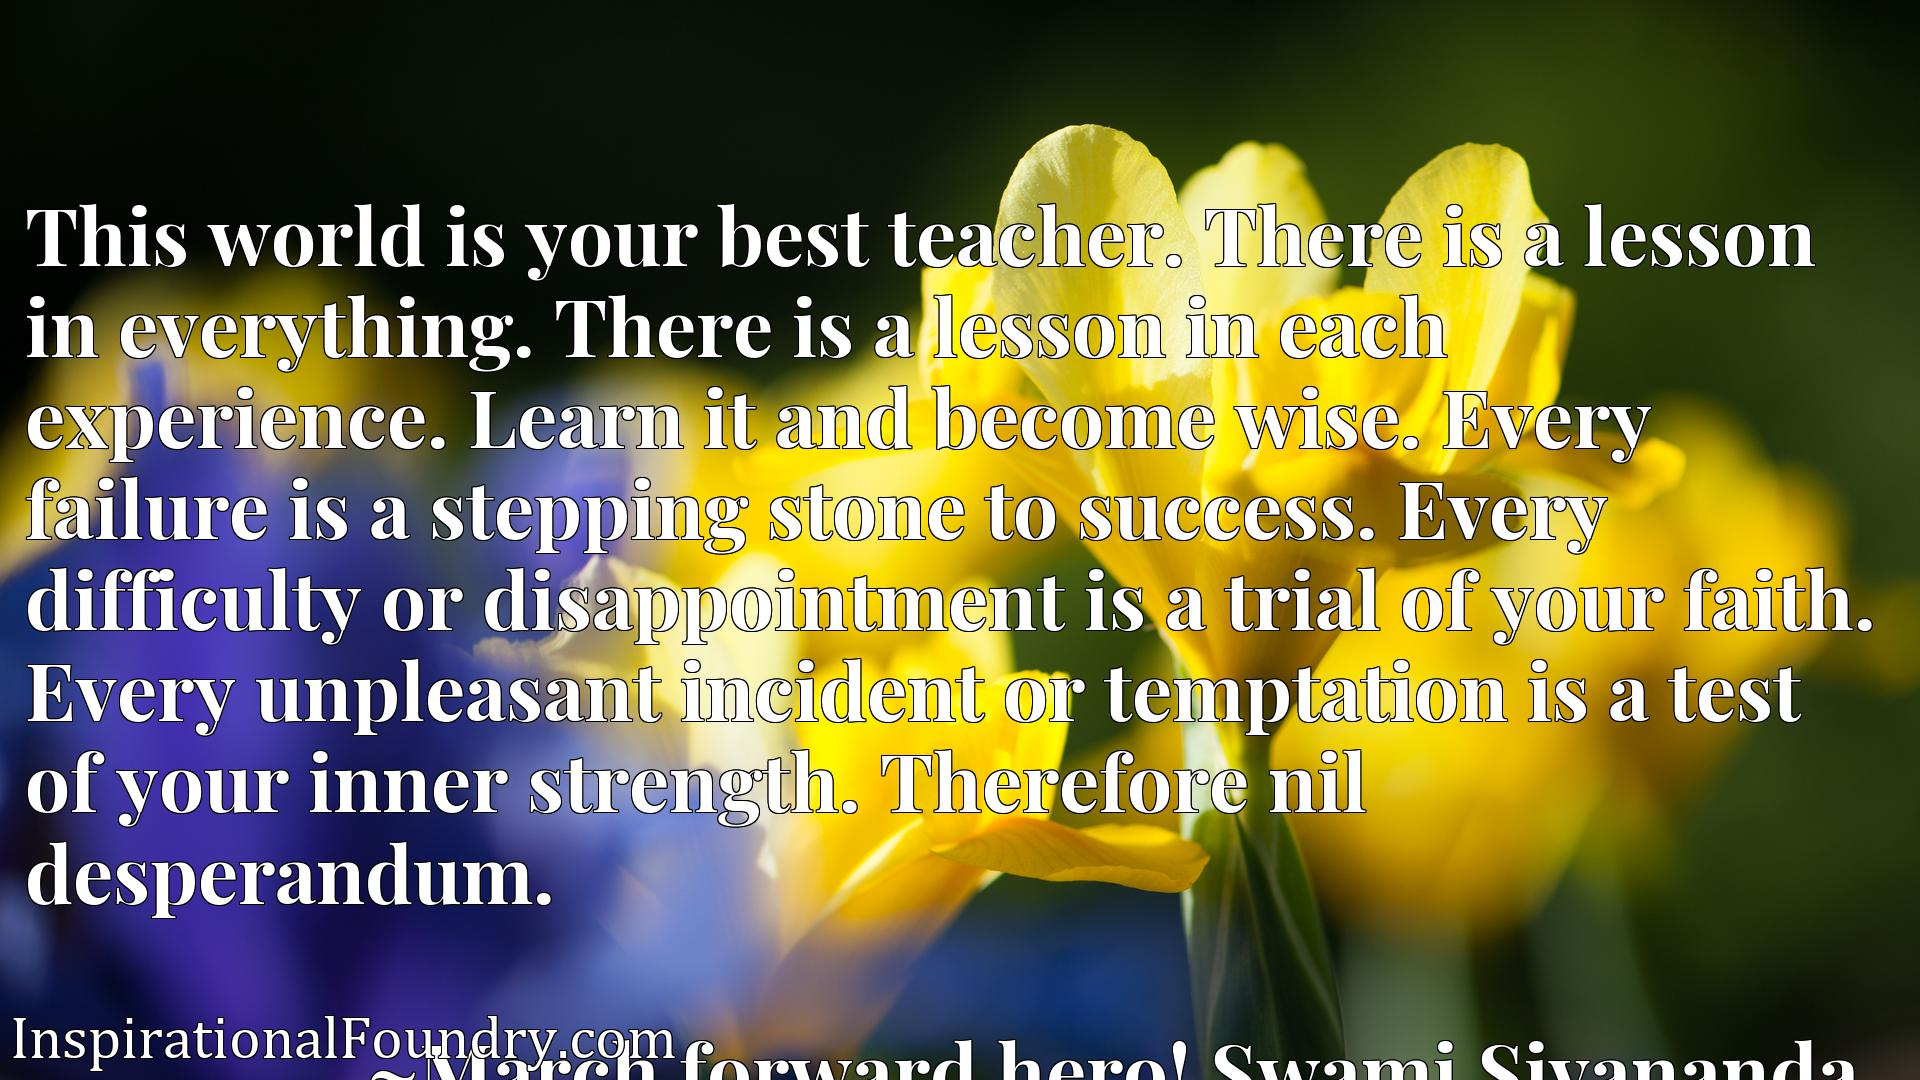 This world is your best teacher. There is a lesson in everything. There is a lesson in each experience. Learn it and become wise. Every failure is a stepping stone to success. Every difficulty or disappointment is a trial of your faith. Every unpleasant incident or temptation is a test of your inner strength. Therefore nil desperandum.